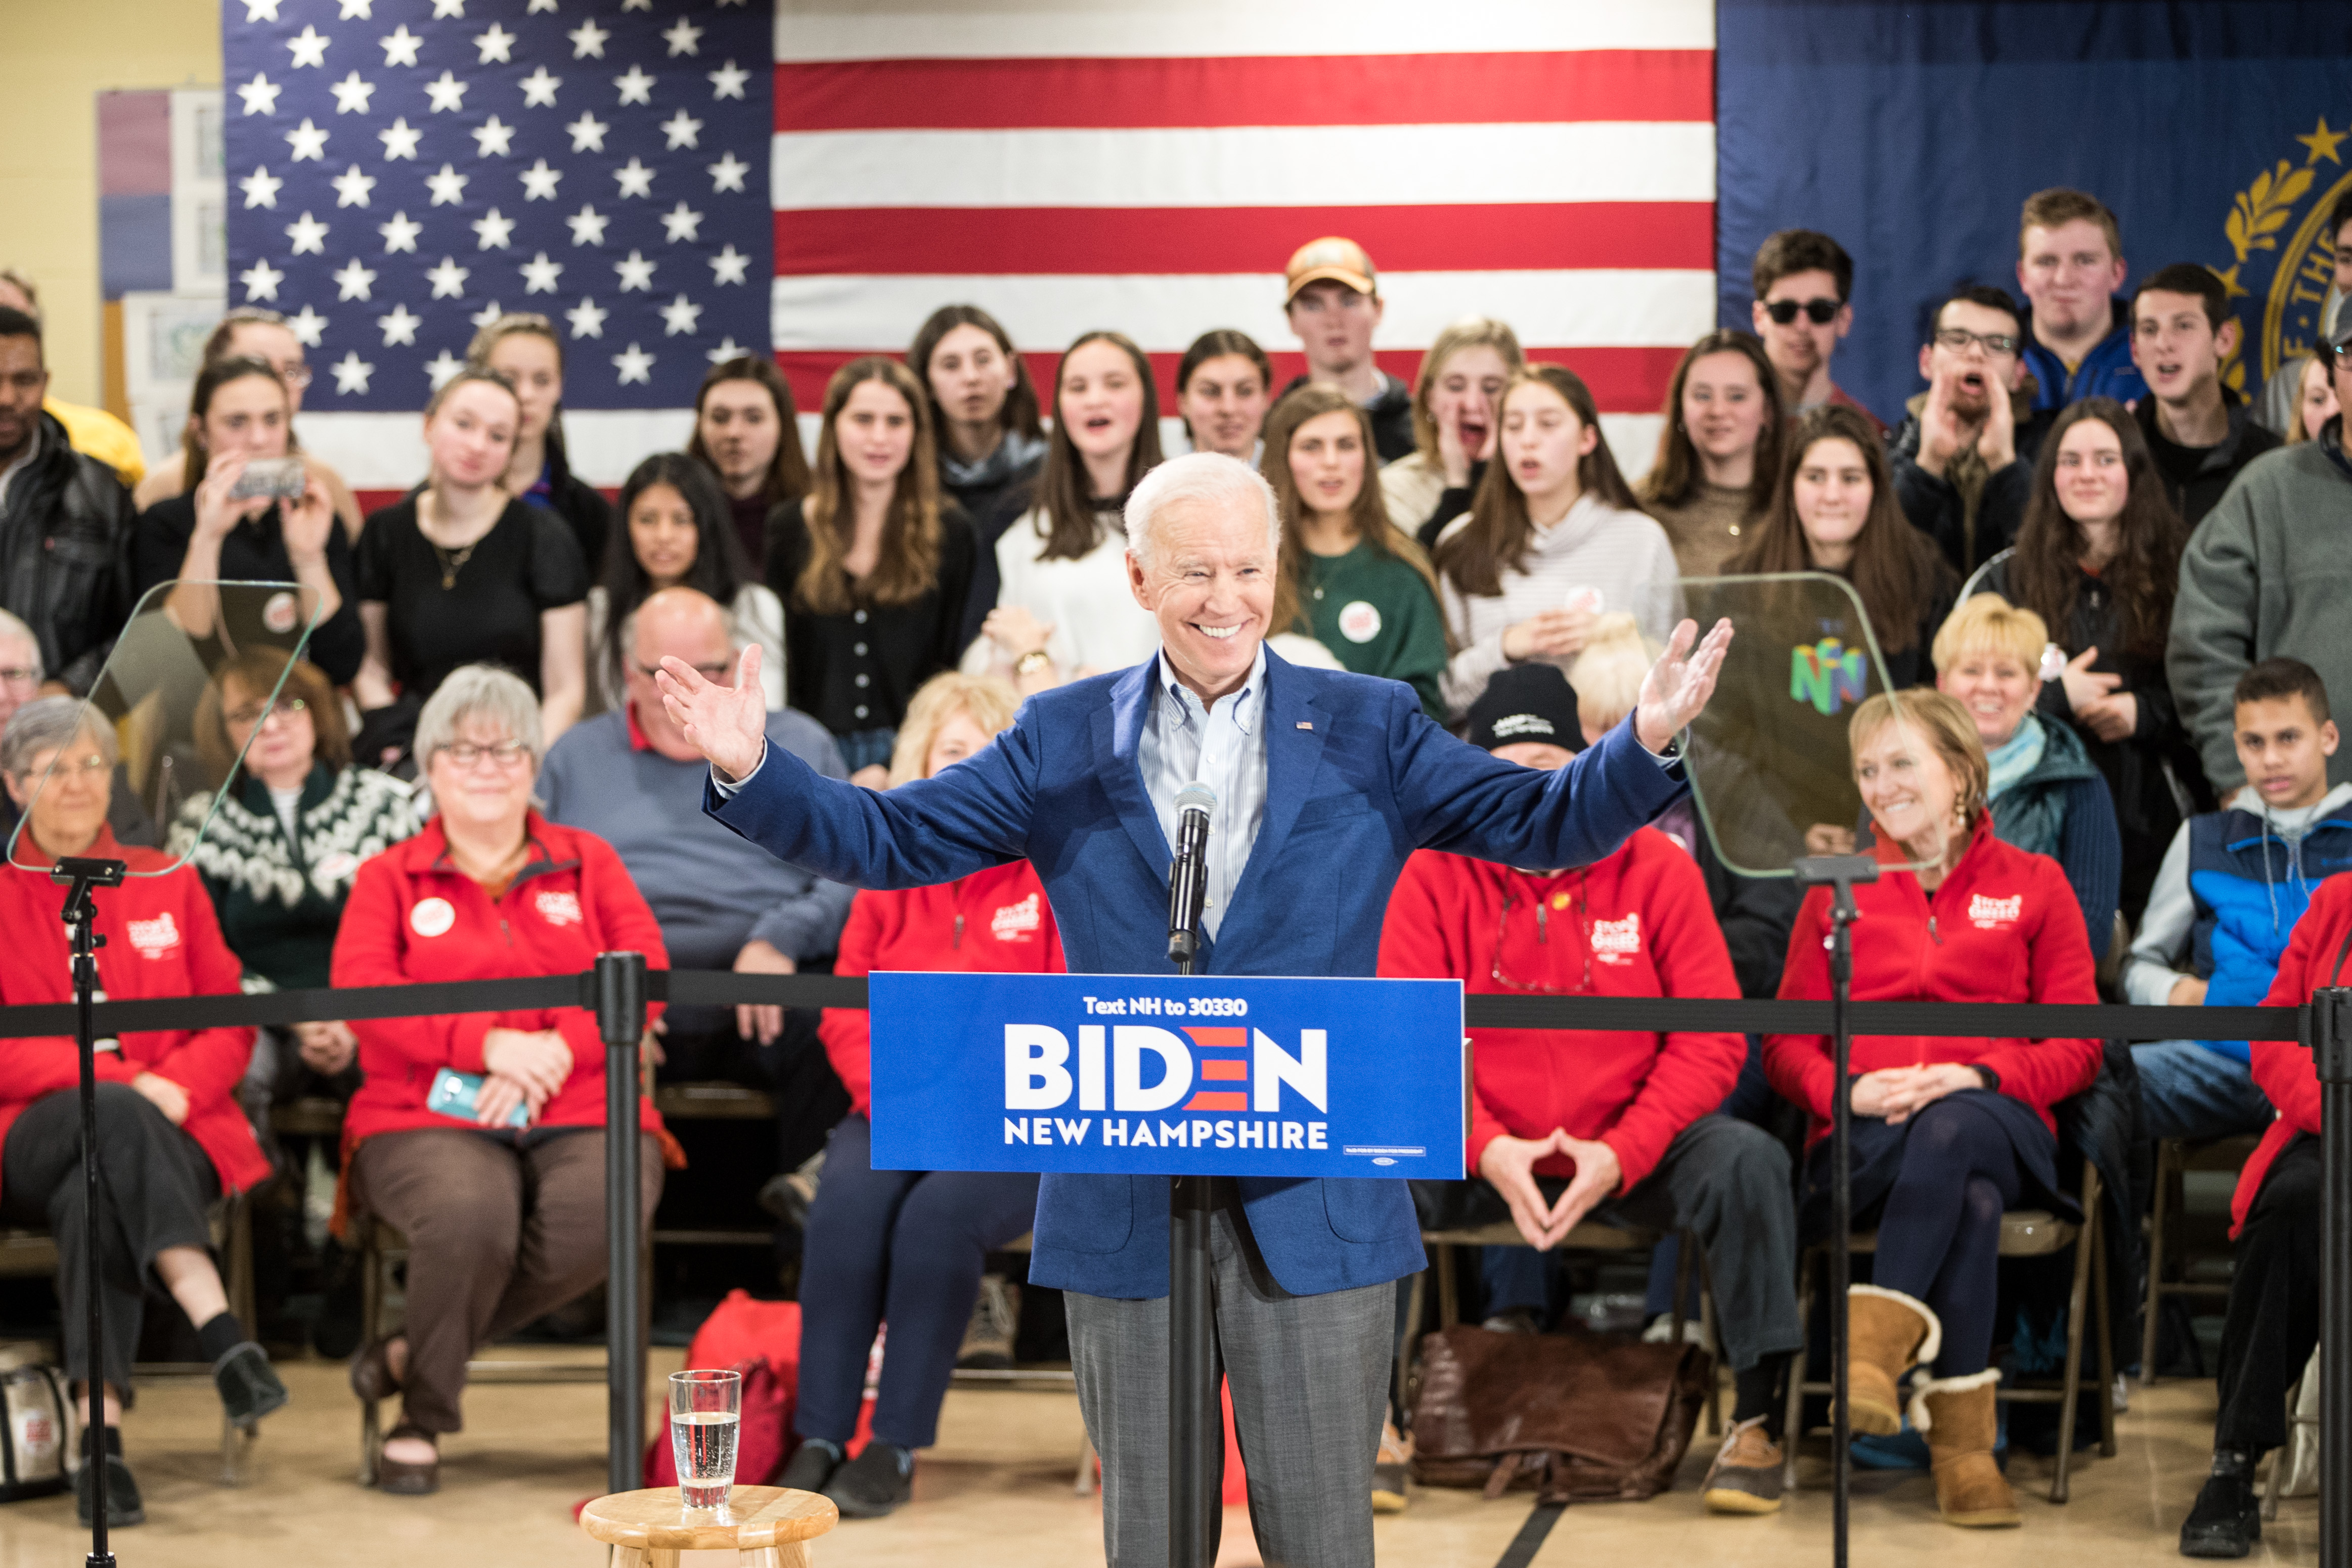 MANCHESTER, NH - FEBRUARY 10: Democratic presidential candidate former Vice President Joe Biden speaks during a campaign event on February 10, 2020 in Manchester, New Hampshire. New Hampshire holds its first in the nation primary tomorrow. (Photo by Scott Eisen/Getty Images)